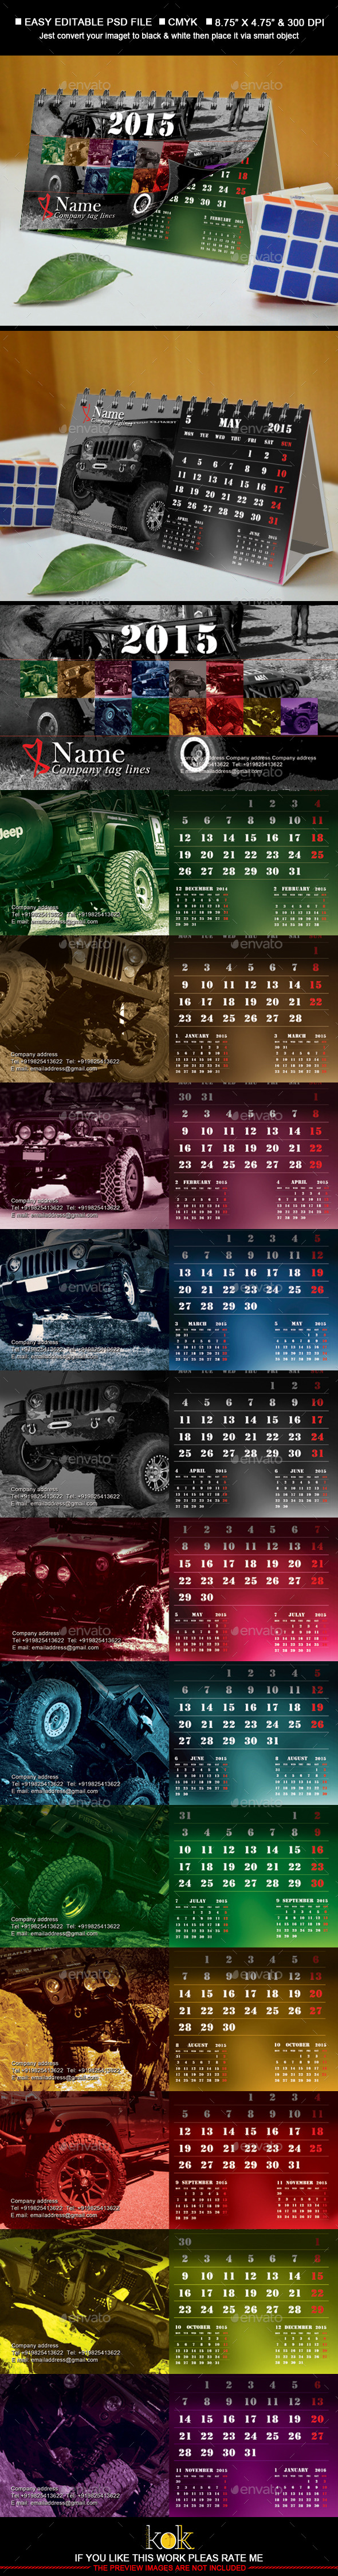 GraphicRiver 2015 Desktop Calendar 9113544